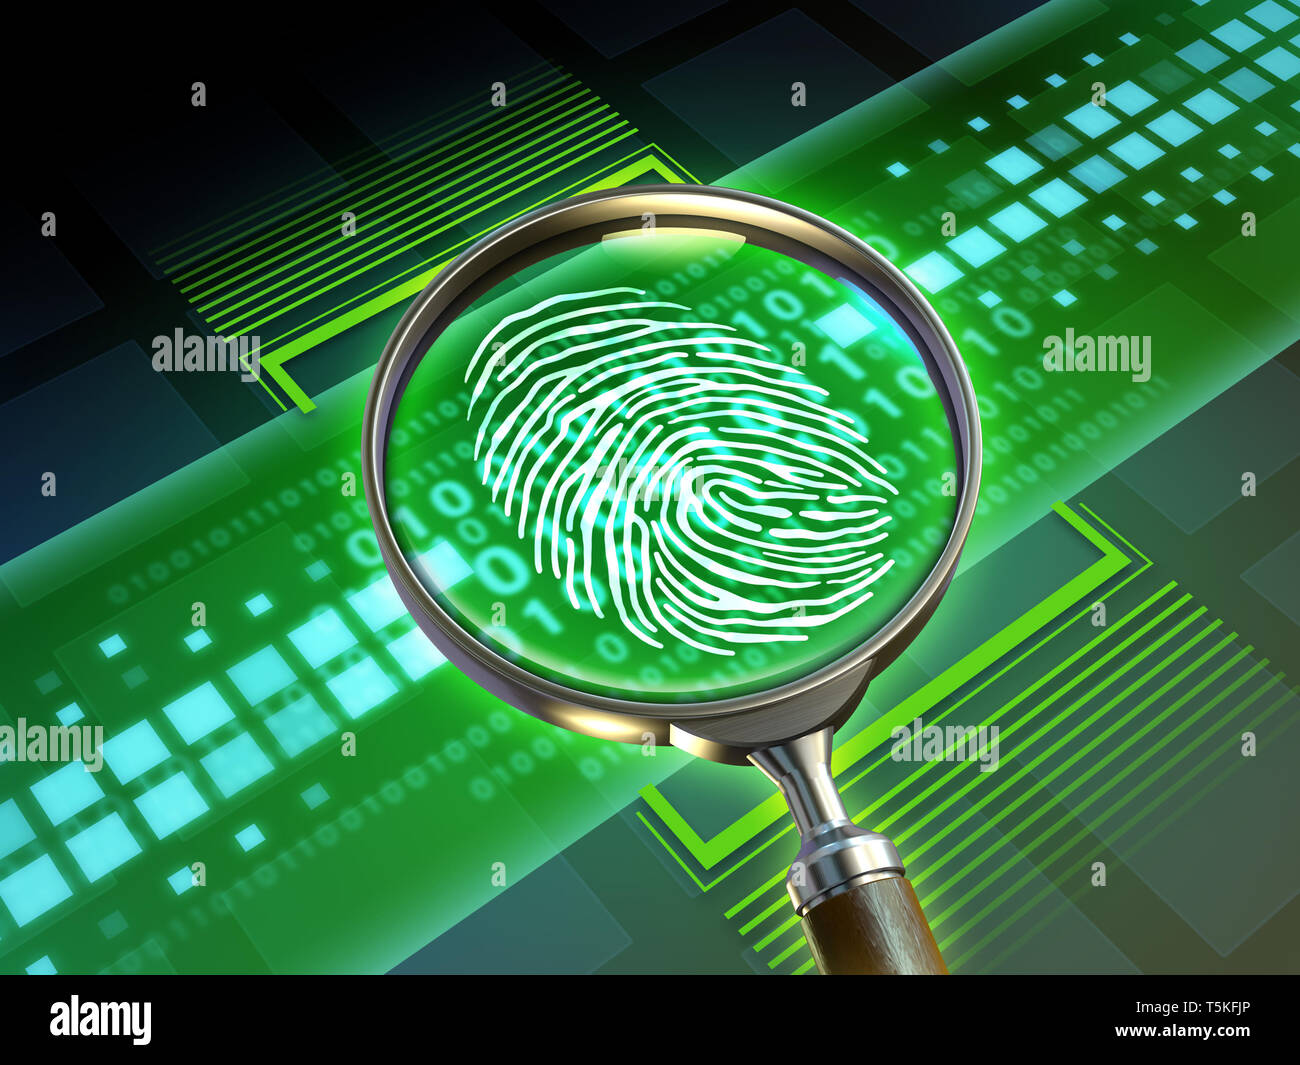 Magnify lens scanning some code and revealing a fingerprint. 3D illustration. - Stock Image